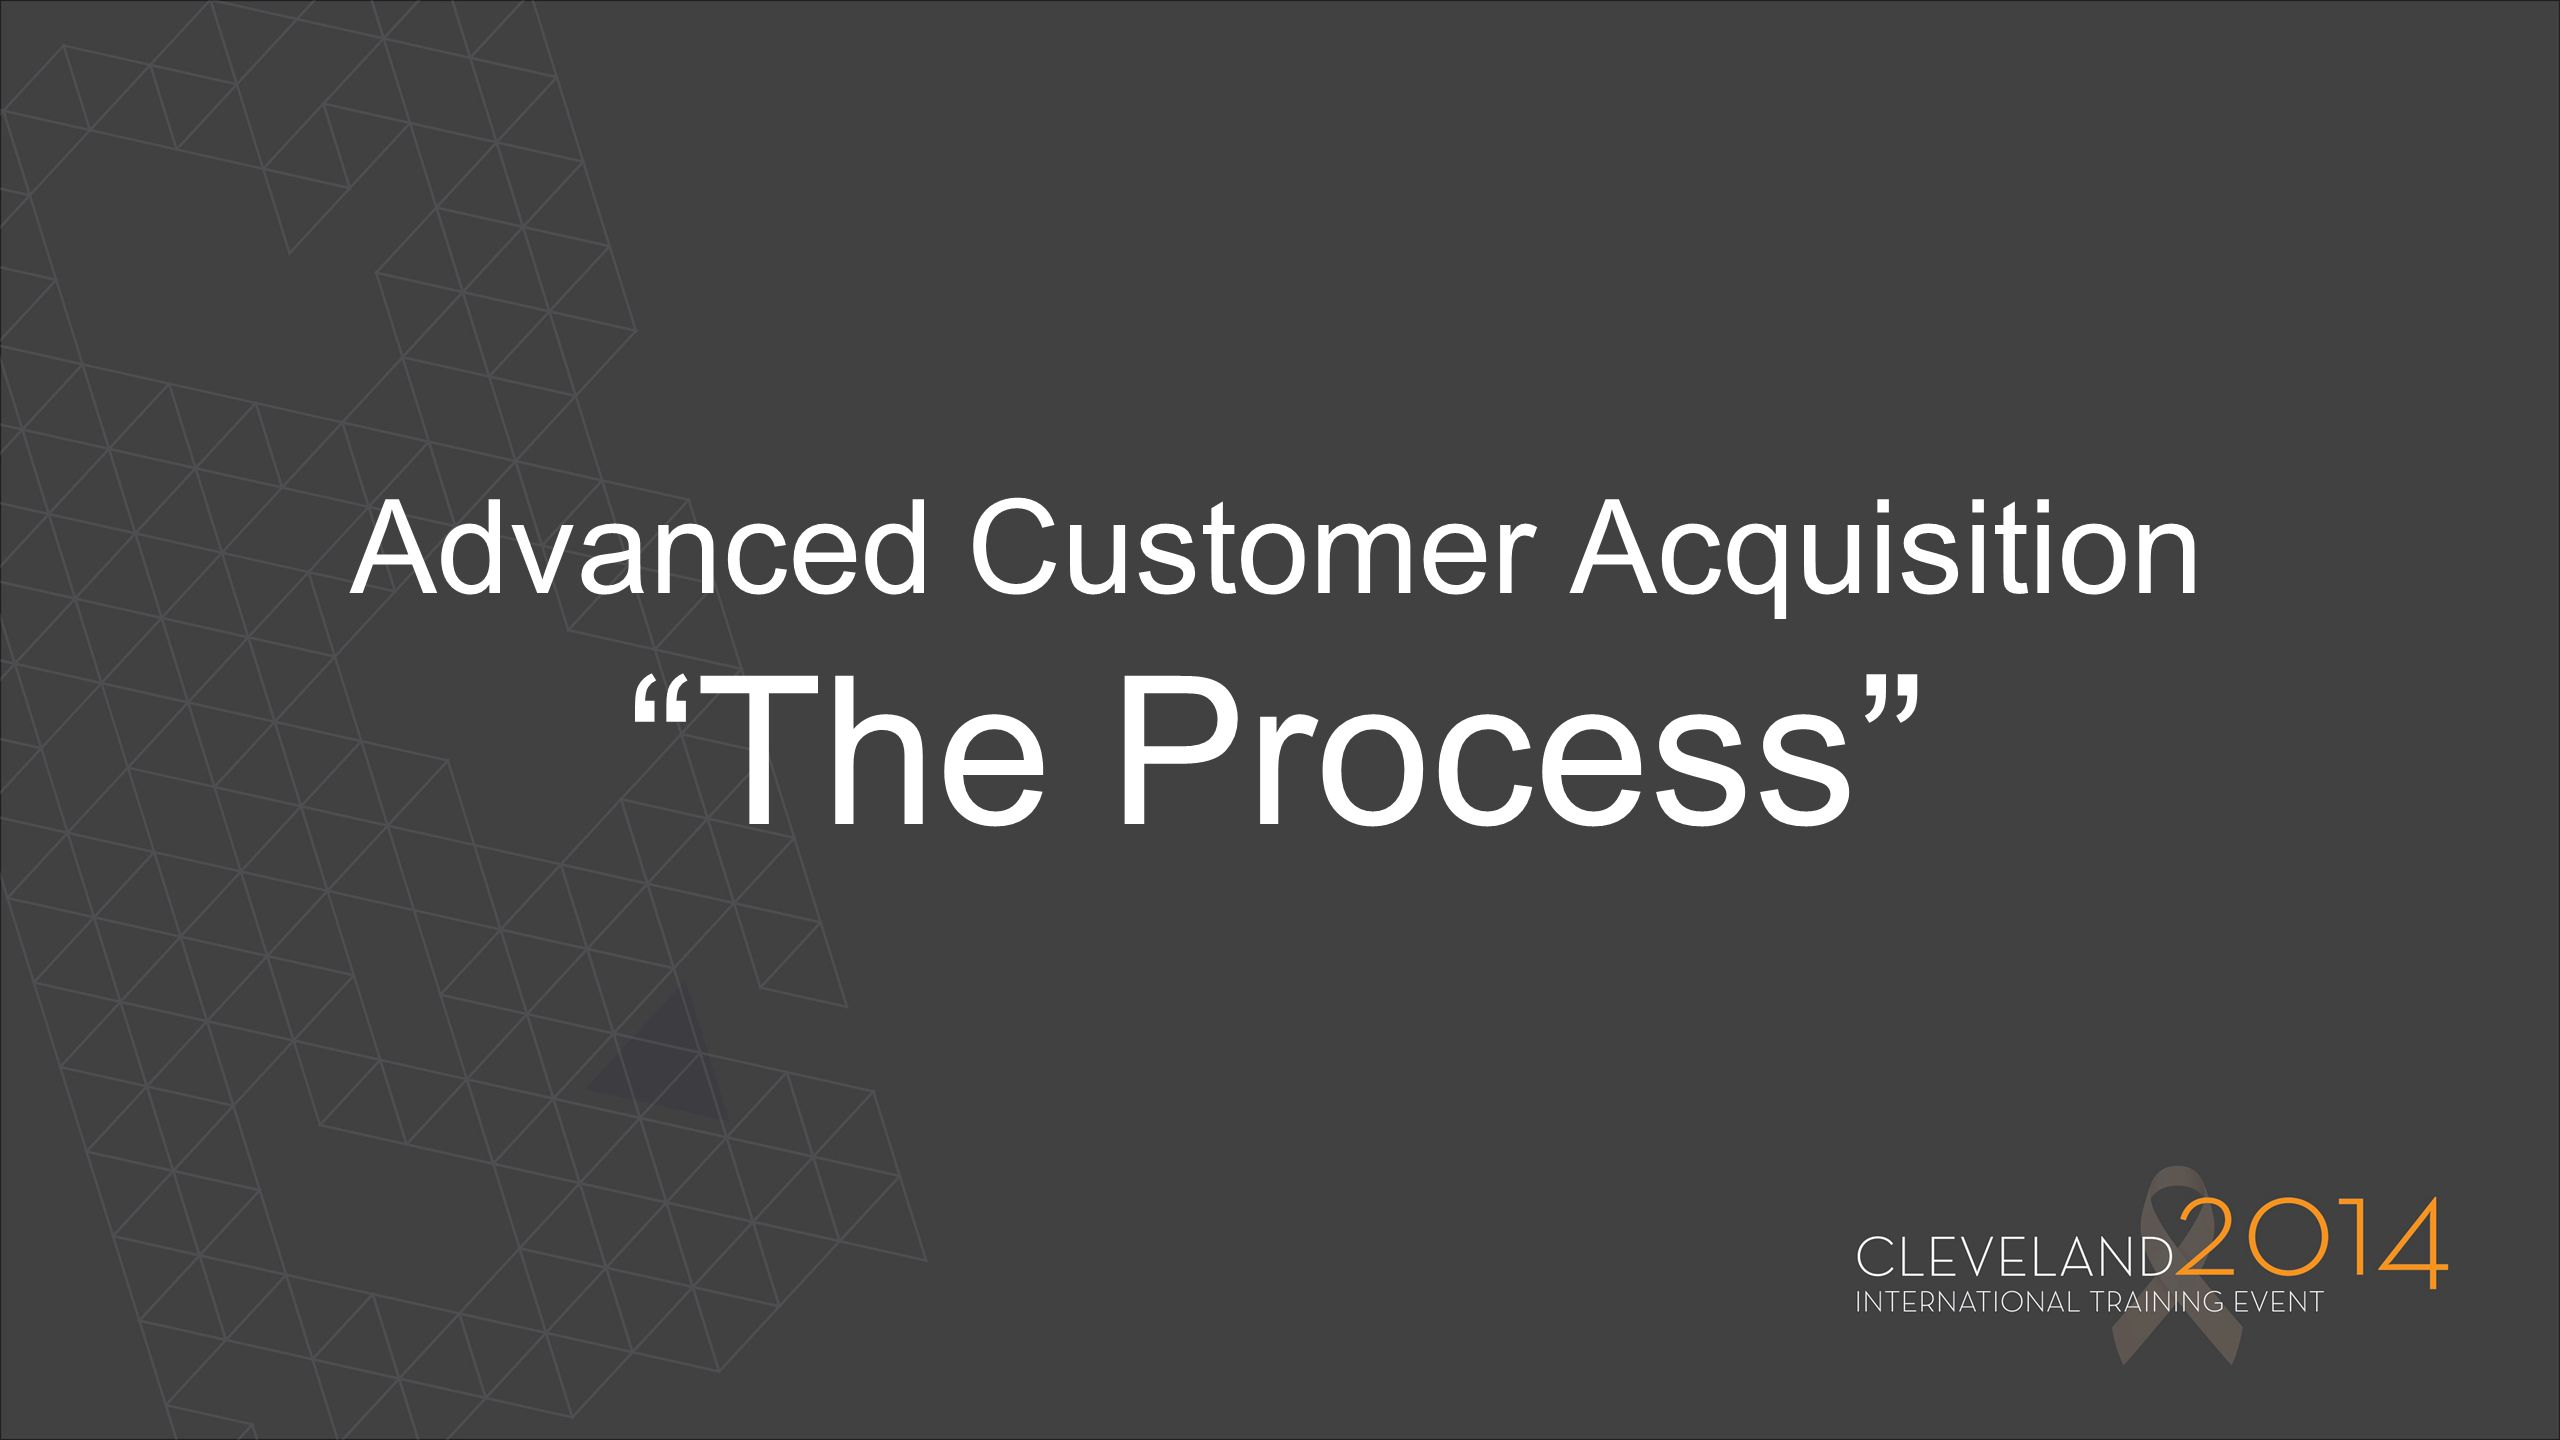 Advanced Customer Acquisition The Process